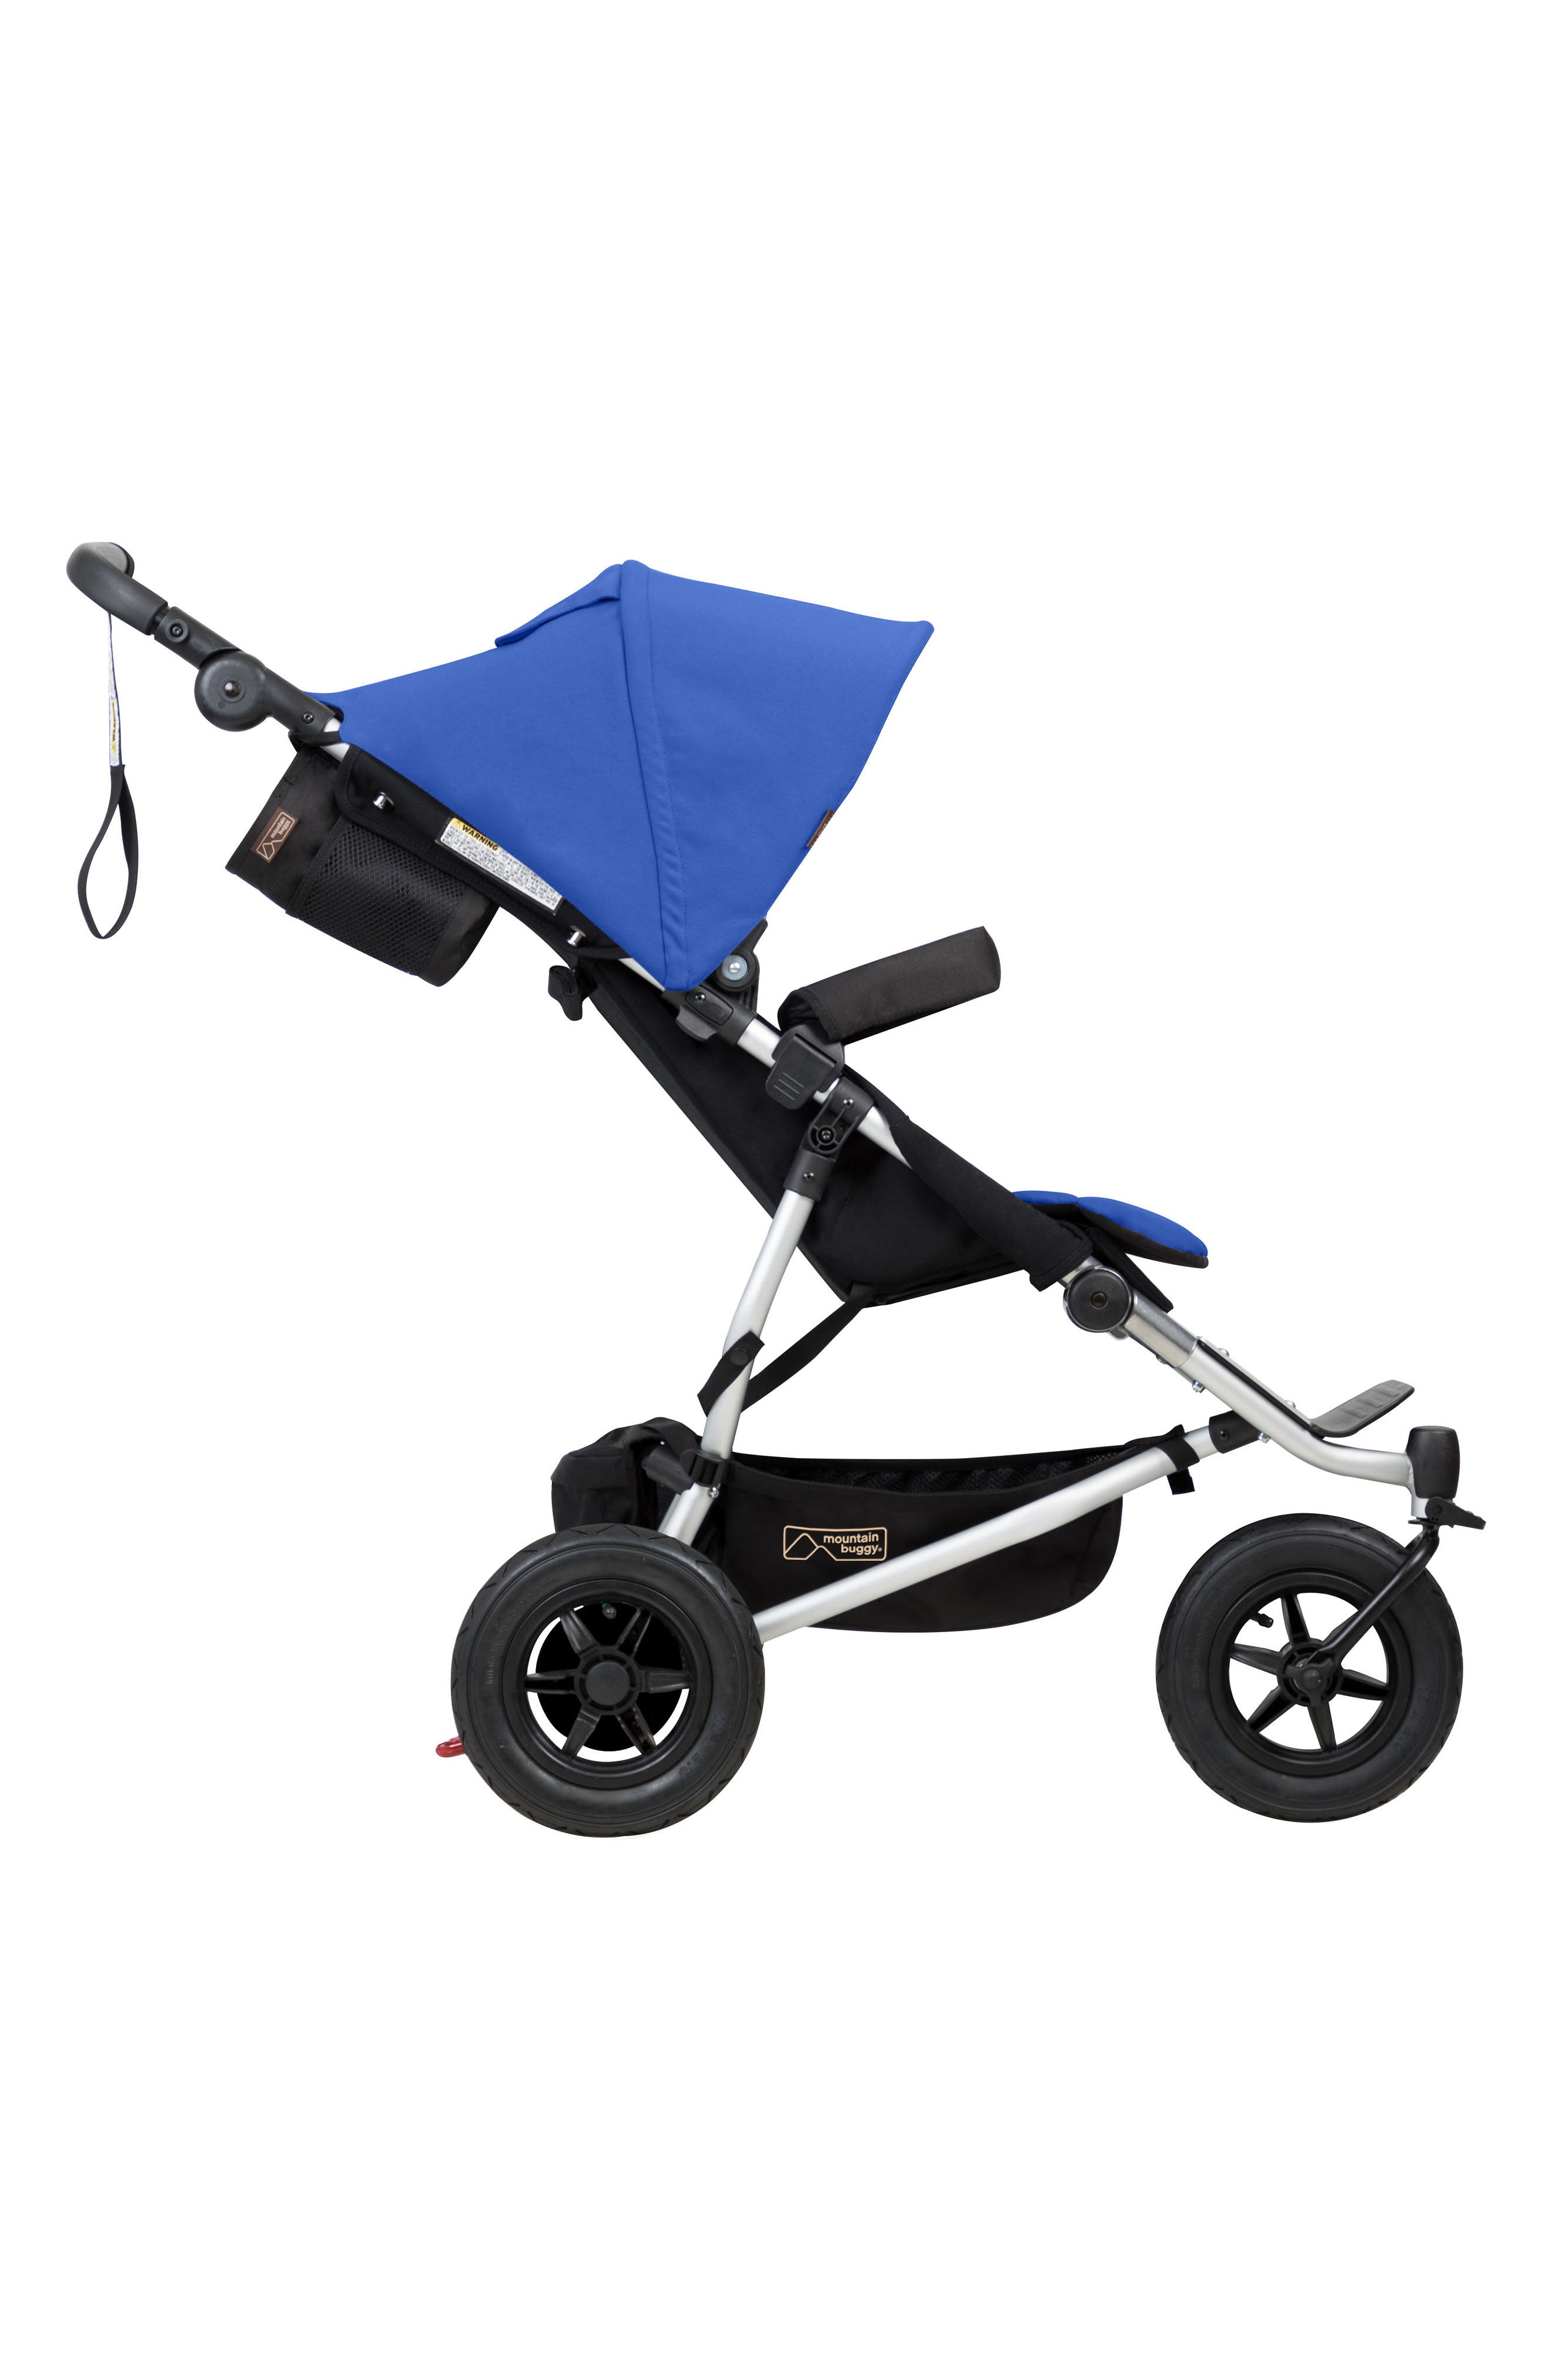 2017 Duet Compact Side by Side Double Stroller,                             Alternate thumbnail 3, color,                             Marine